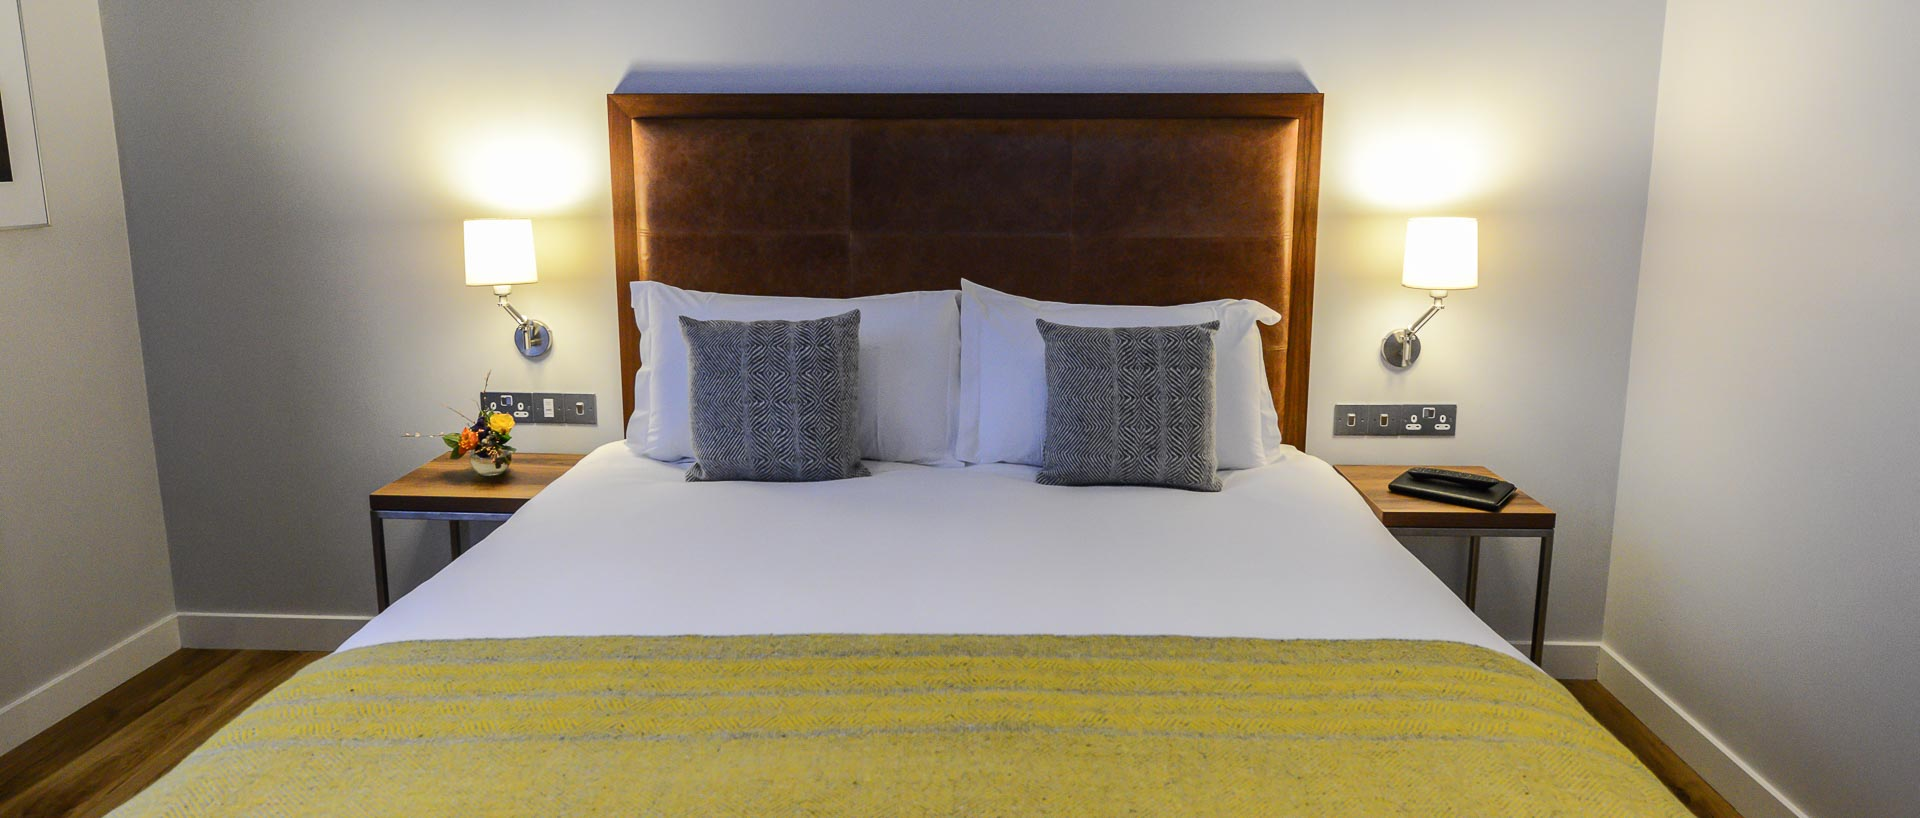 Modern spacious double bedroom in PREMIER SUITES PLUS Dublin executive studio